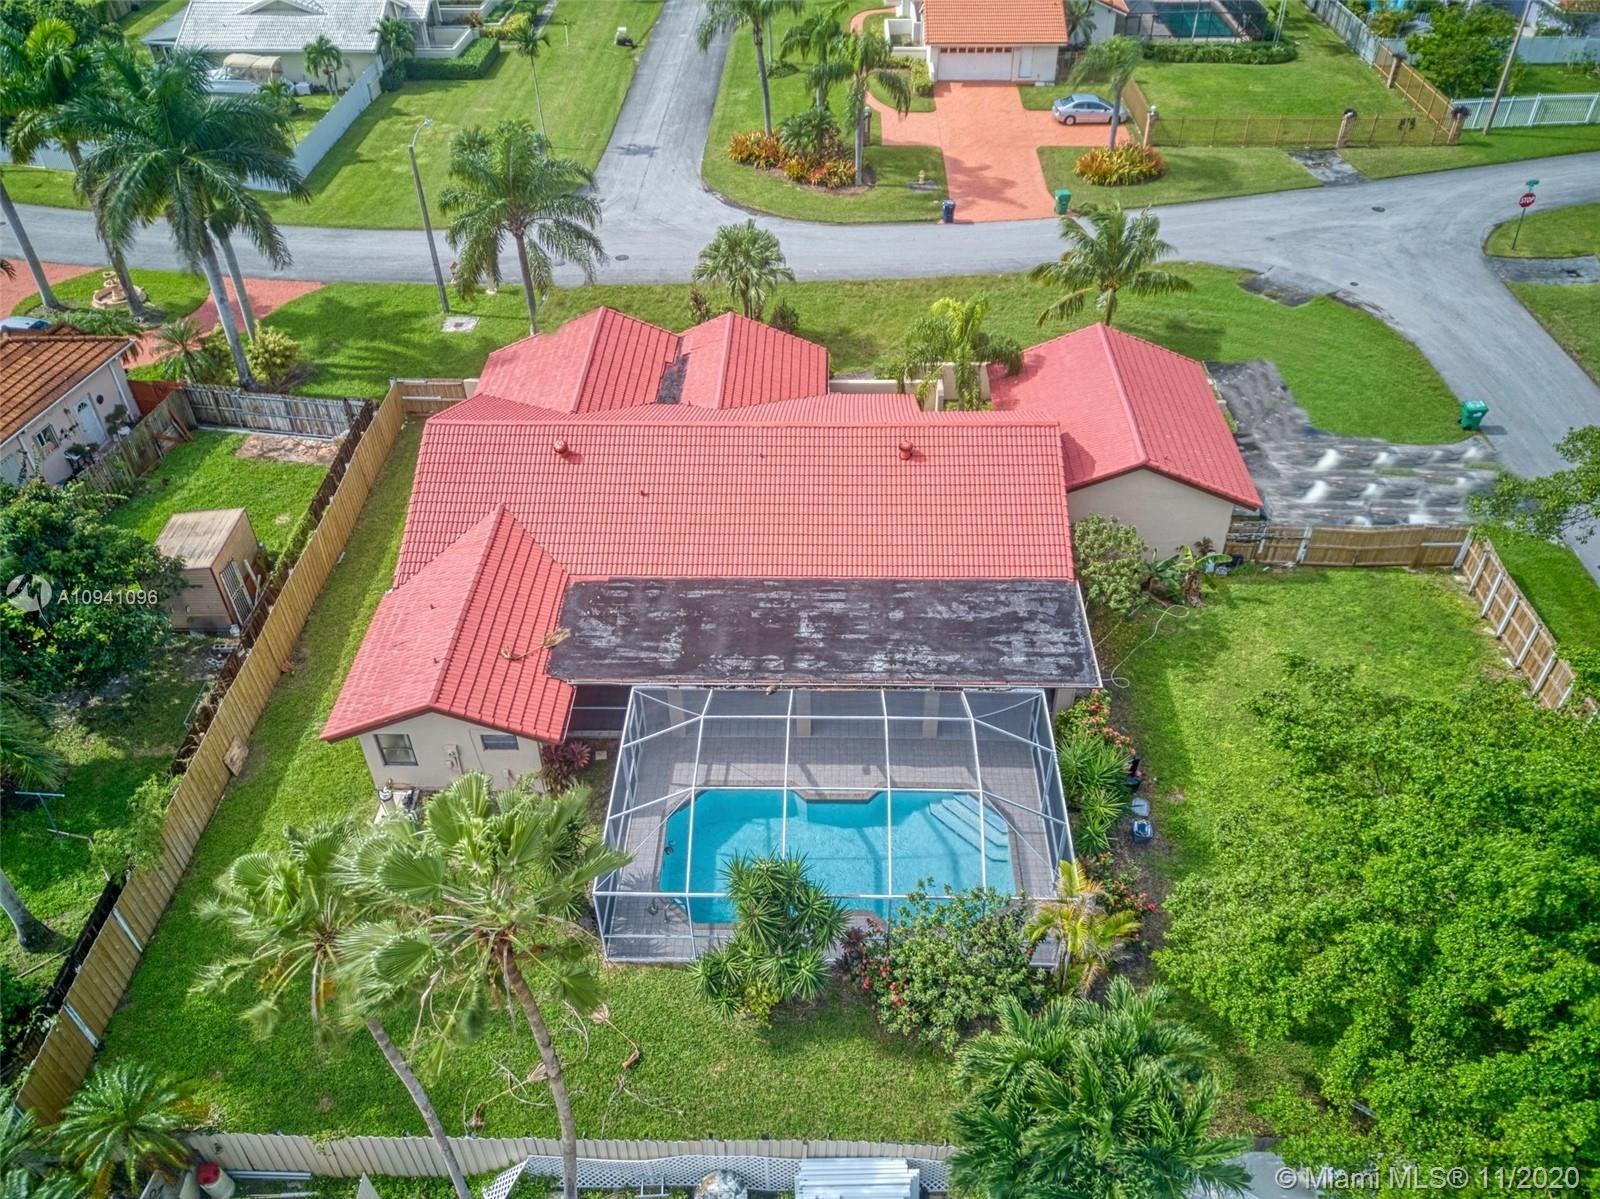 21801 SW 127th Ct, Miami, FL 33170 - #: A10941096